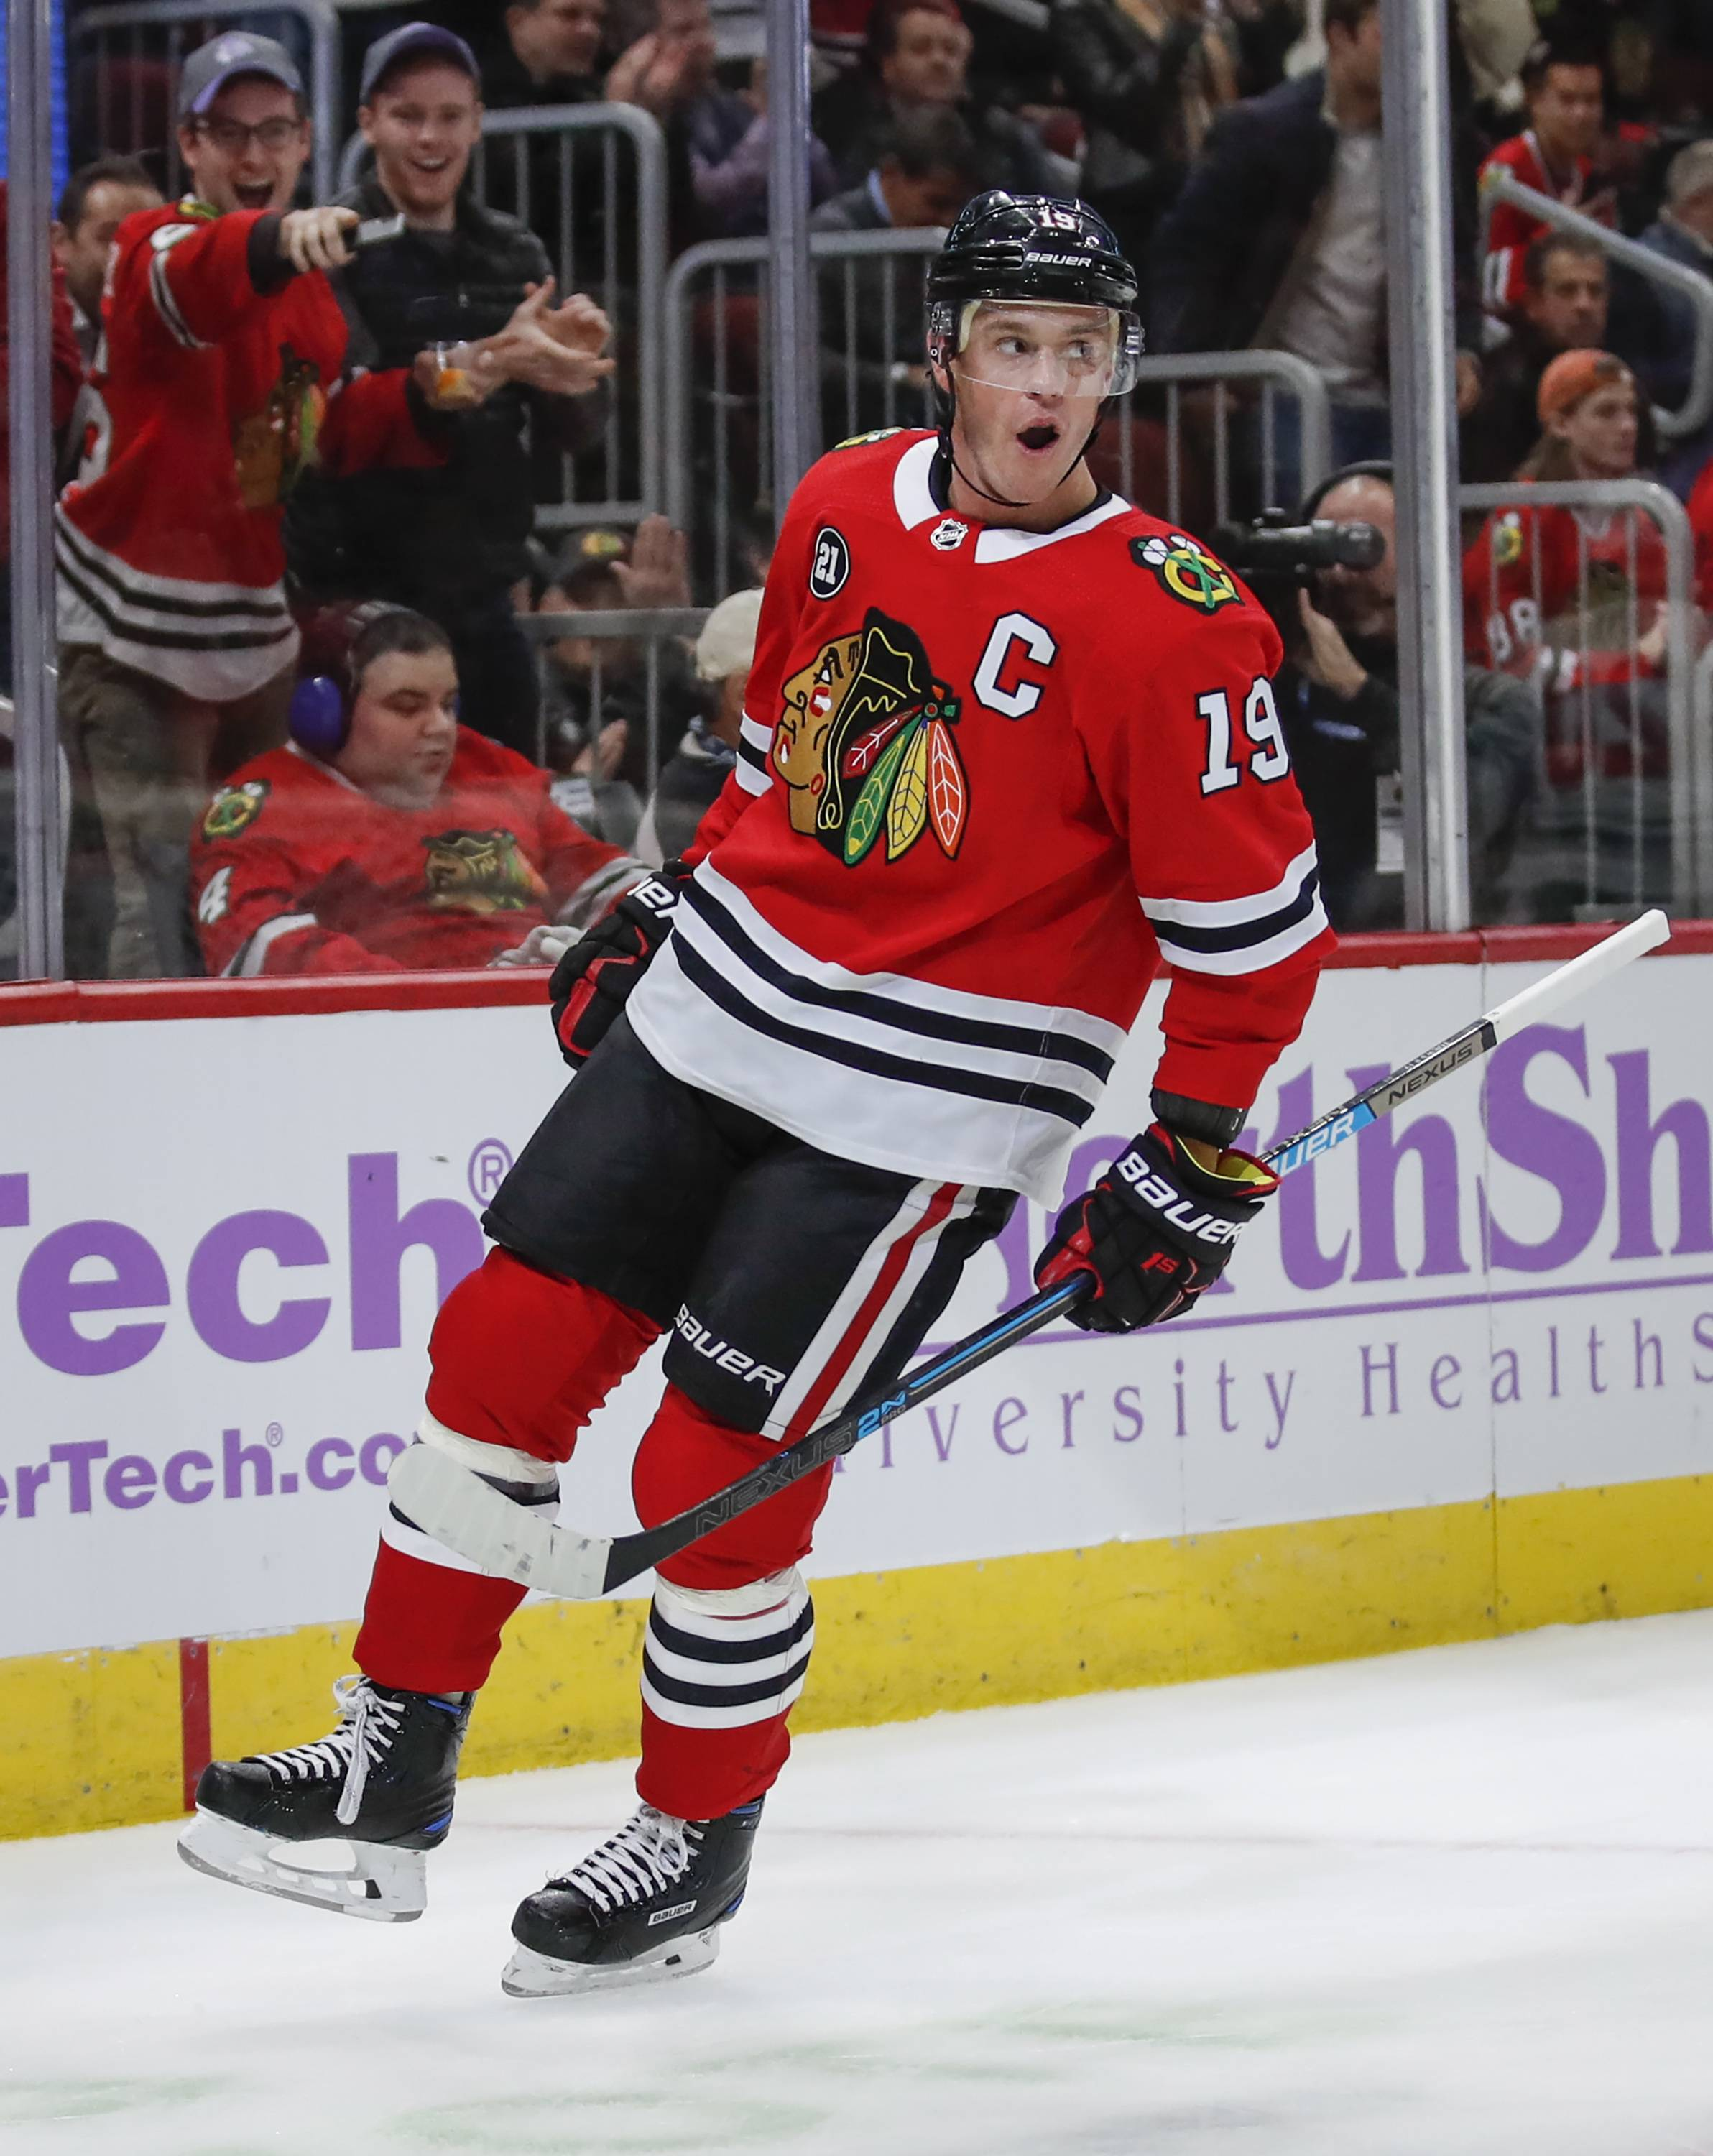 Chicago Blackhawks center Jonathan Toews celebrates after scoring against the Minnesota Wild during the first period of an NHL hockey game Sunday, Nov. 18, 2018, in Chicago.